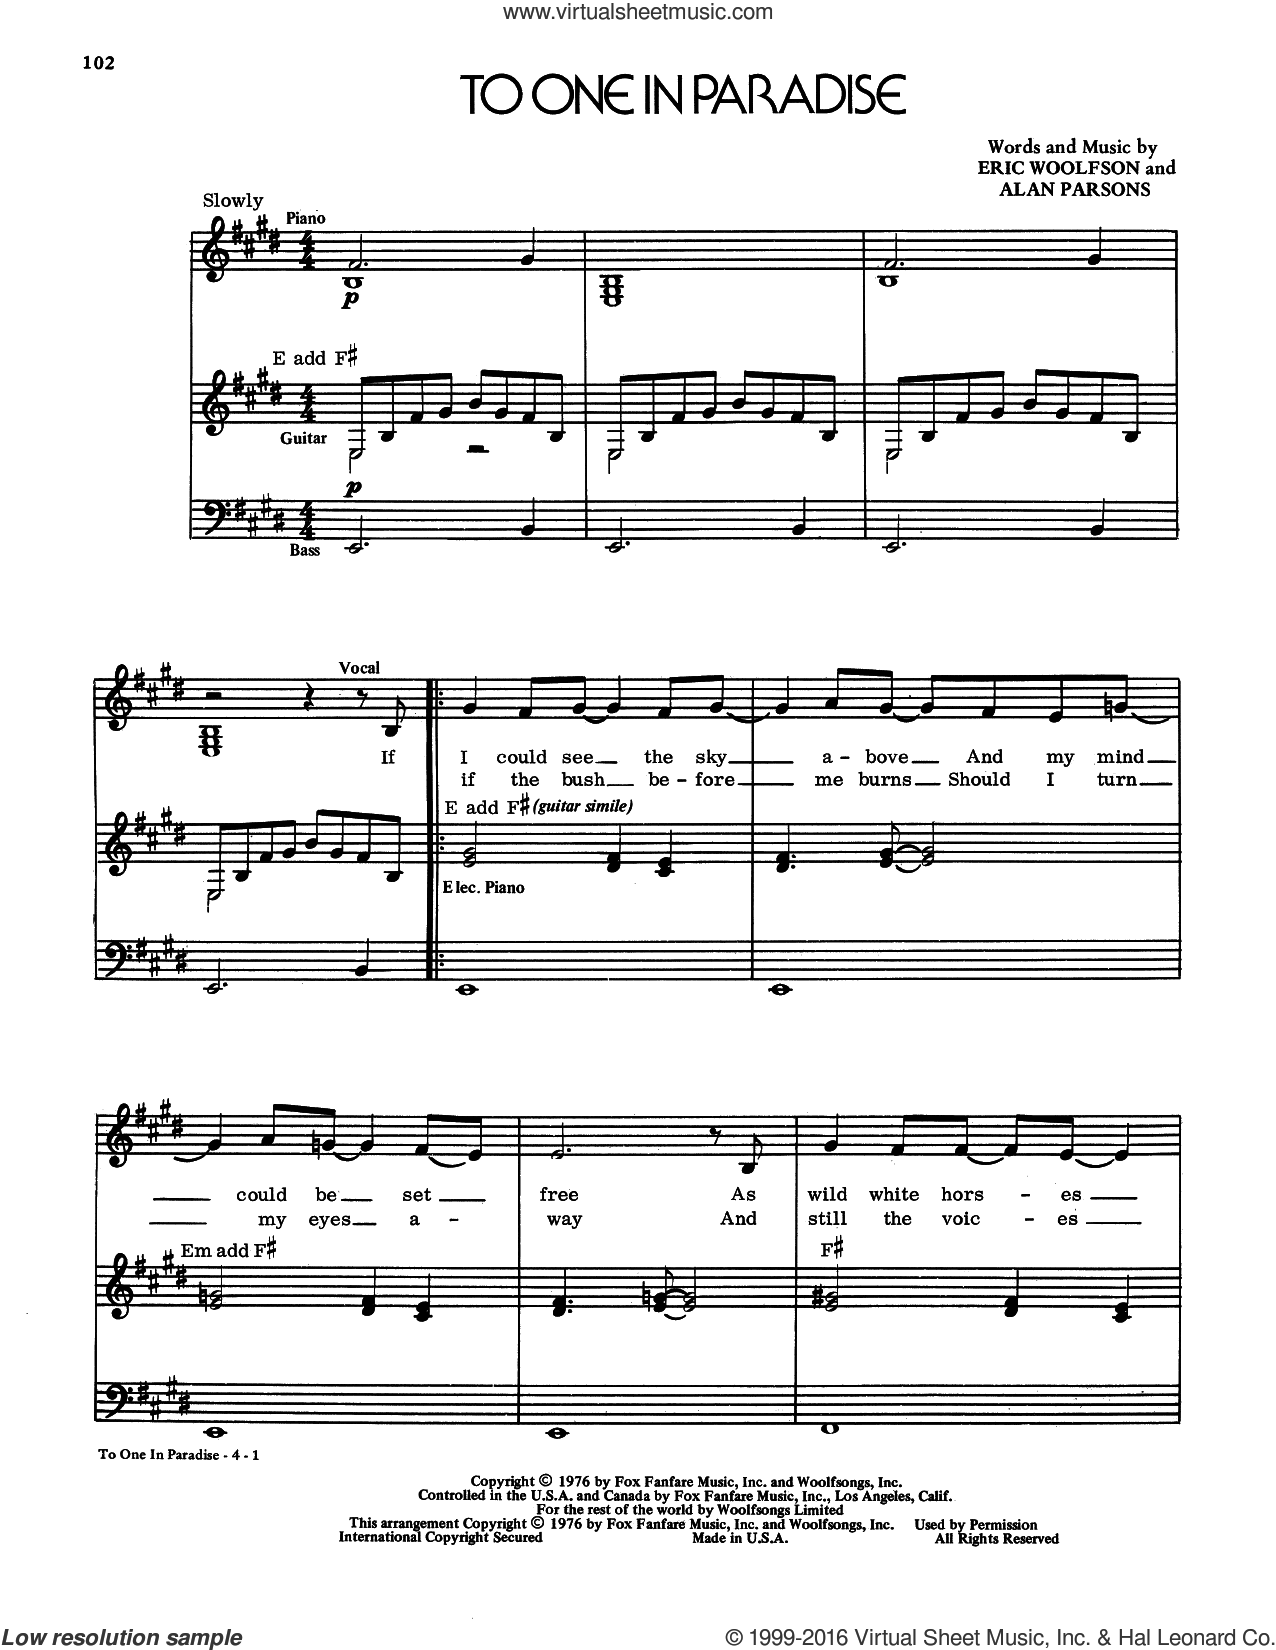 To One In Paradise sheet music for voice and piano by Alan Parsons Project, Alan Parsons and Eric Woolfson, intermediate skill level